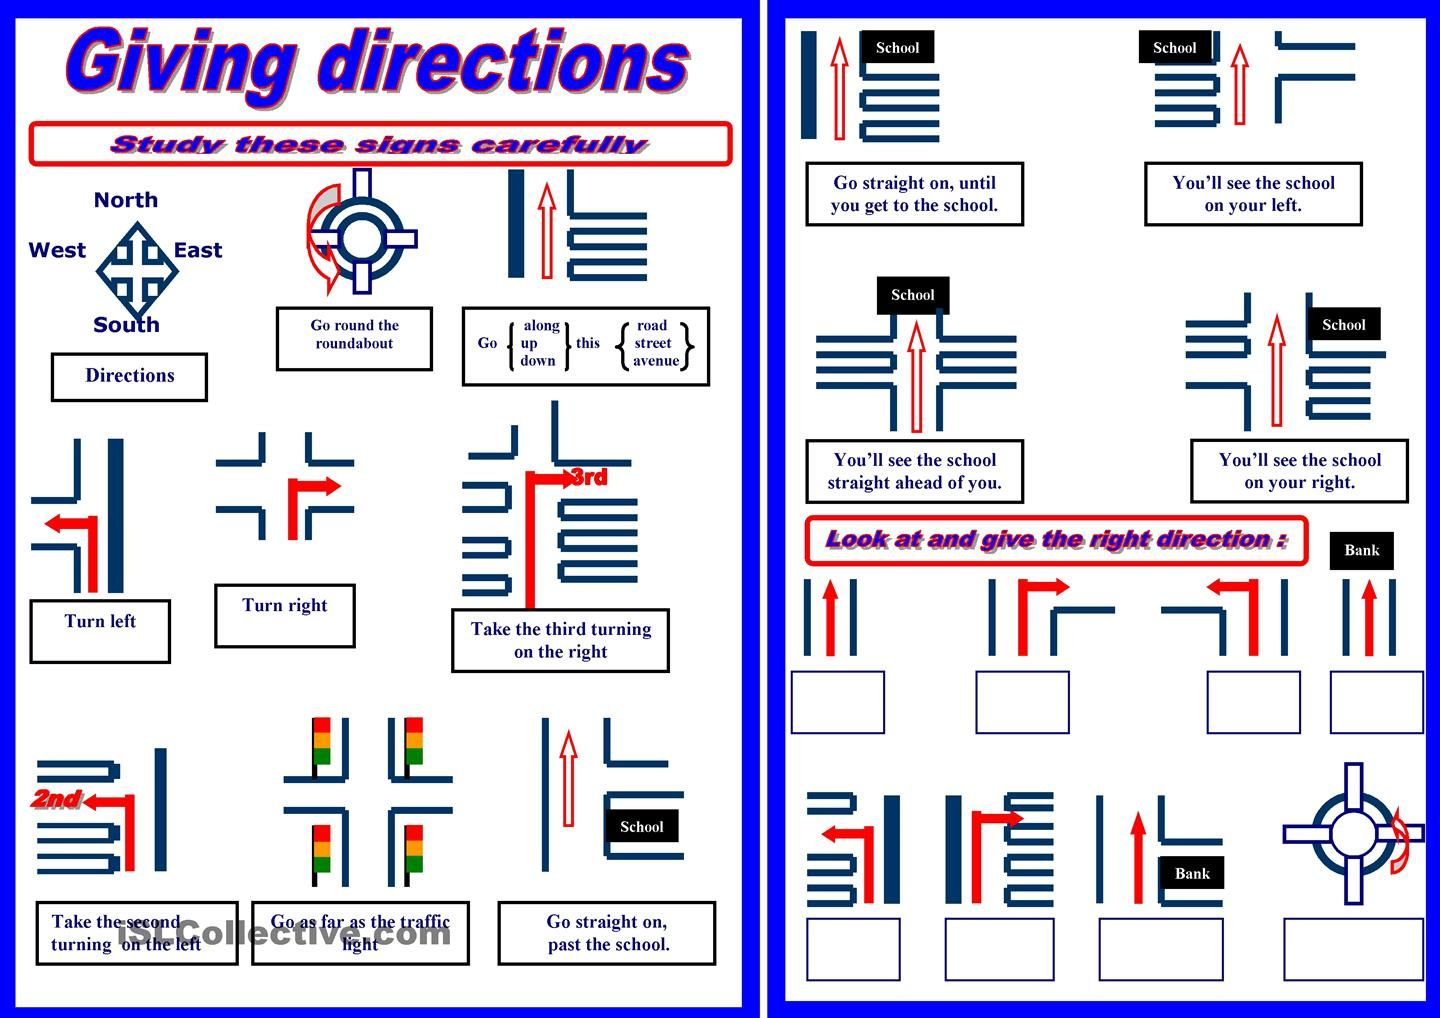 17 Best images about asking and giving directions on Pinterest ...